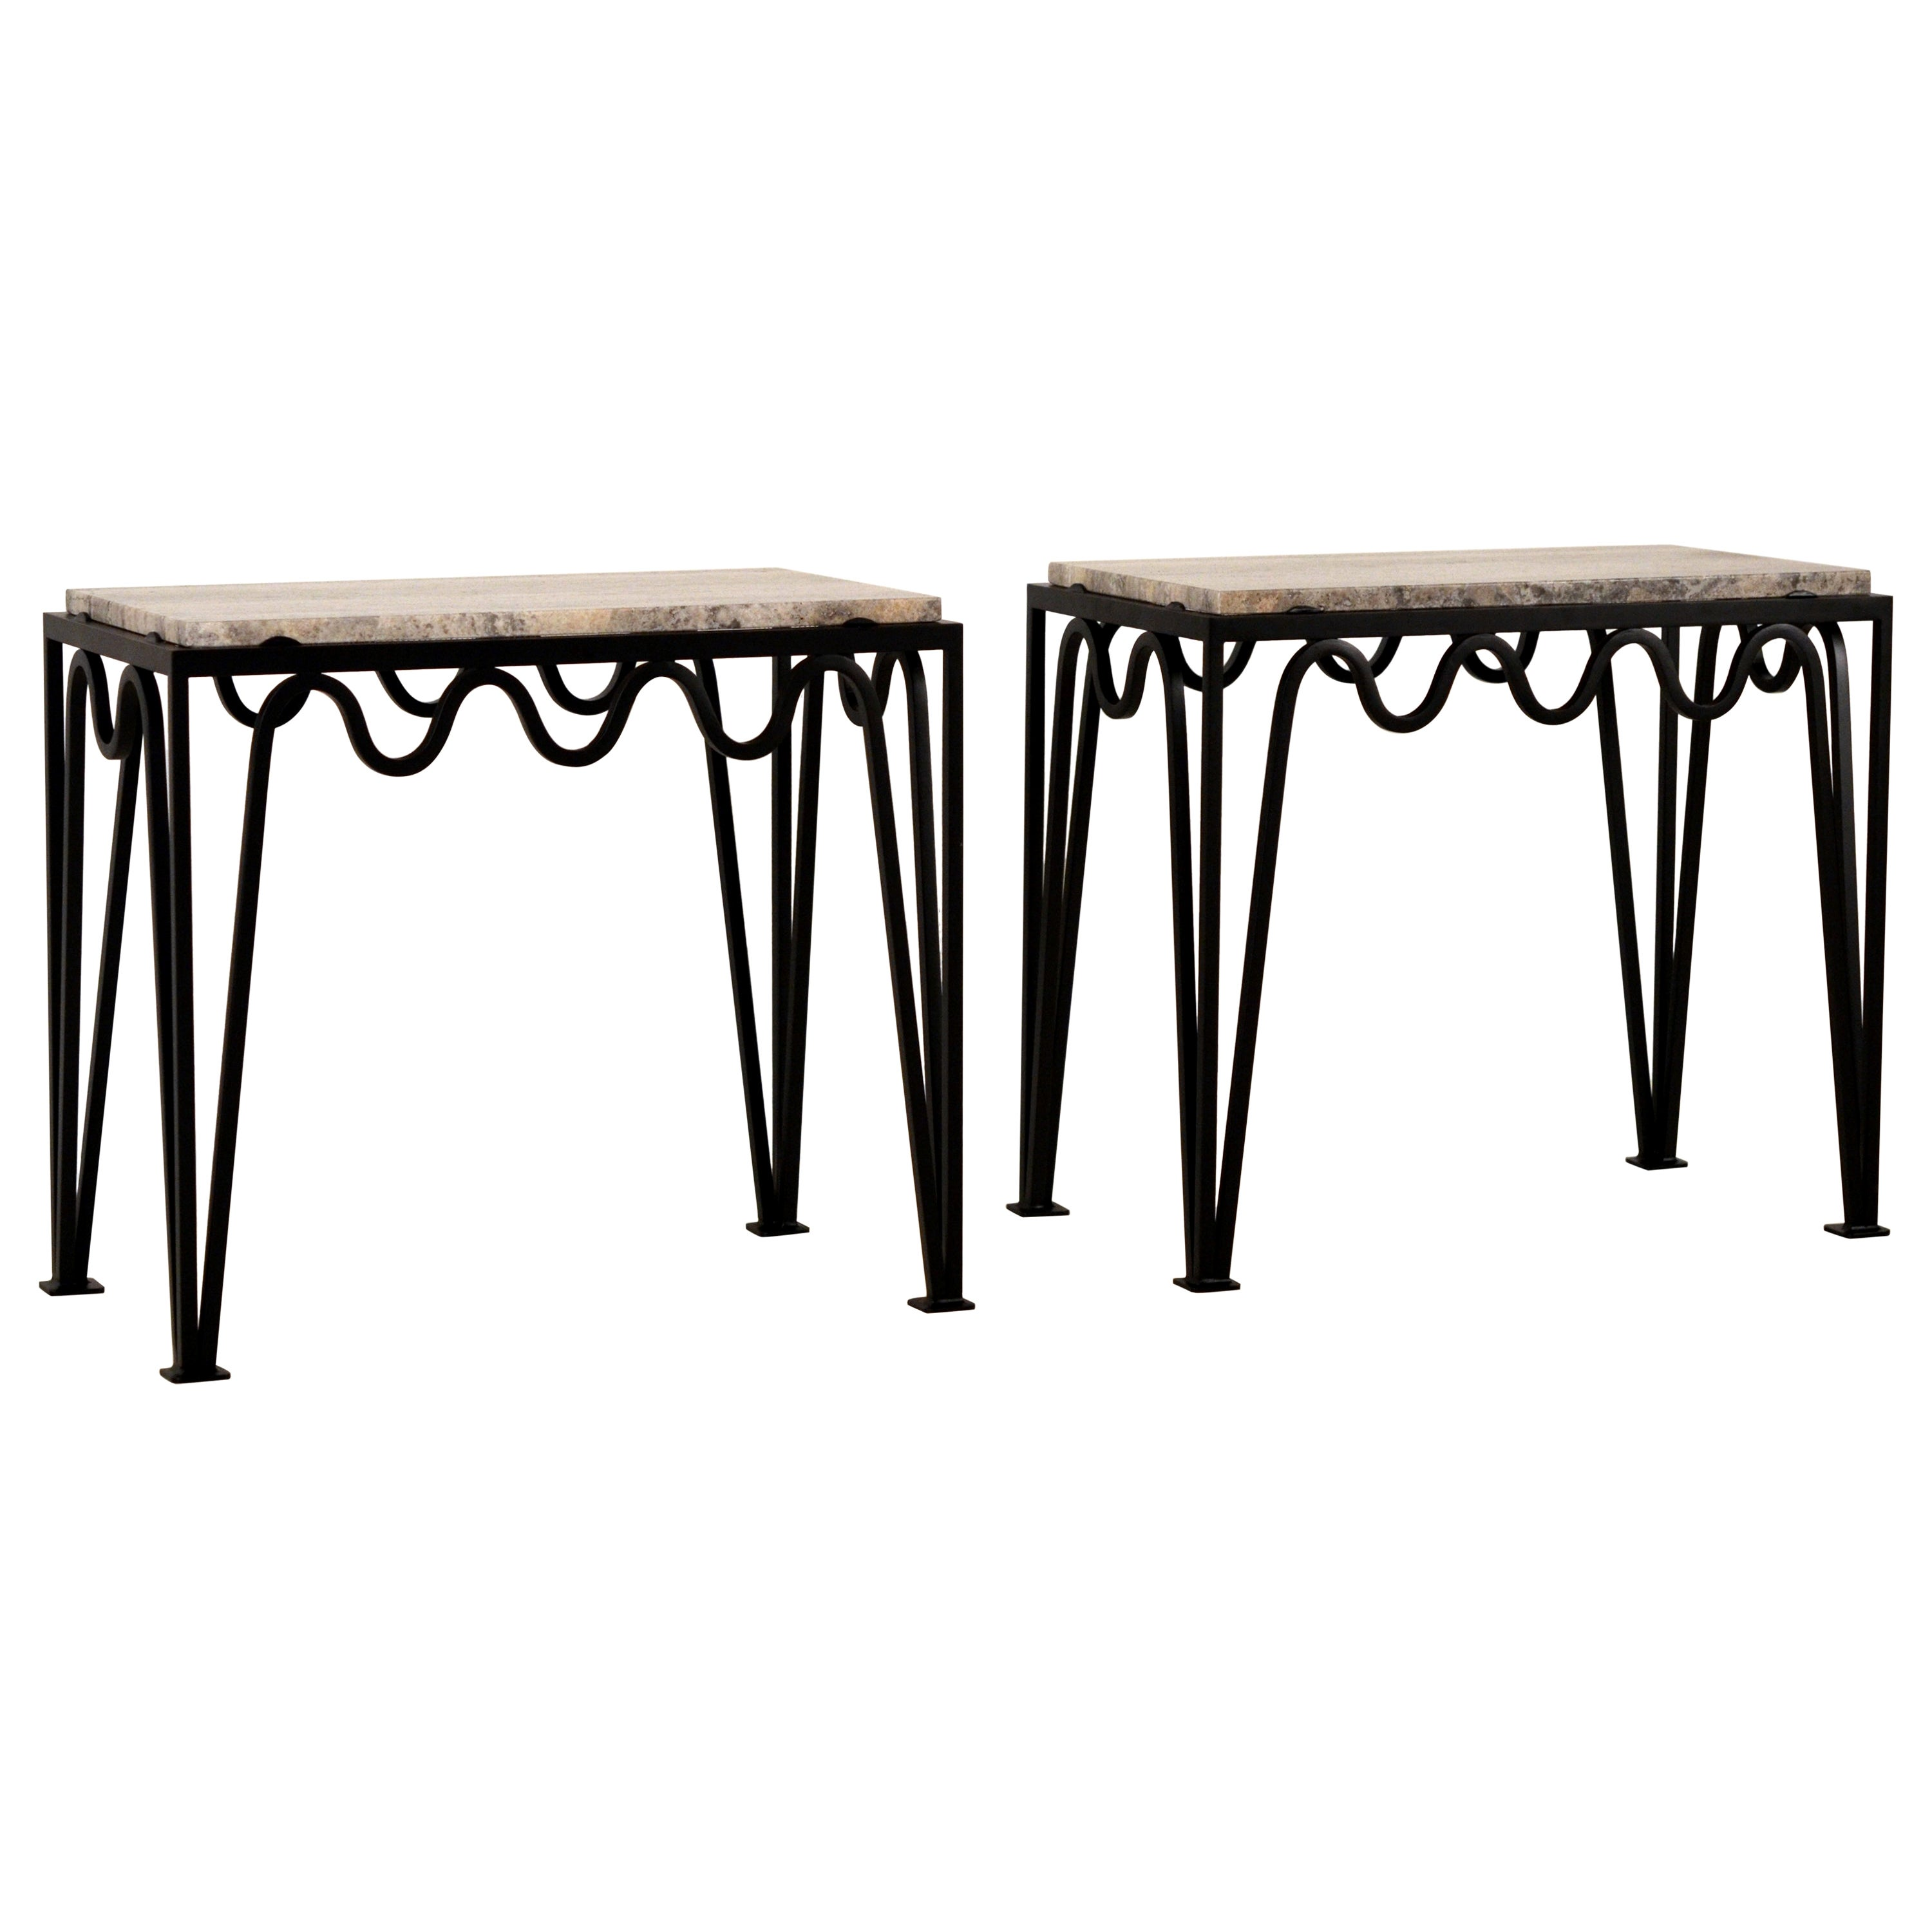 Pair of 'Méandre' Black Iron and  Silver Travertine Side Tables by Design Frères